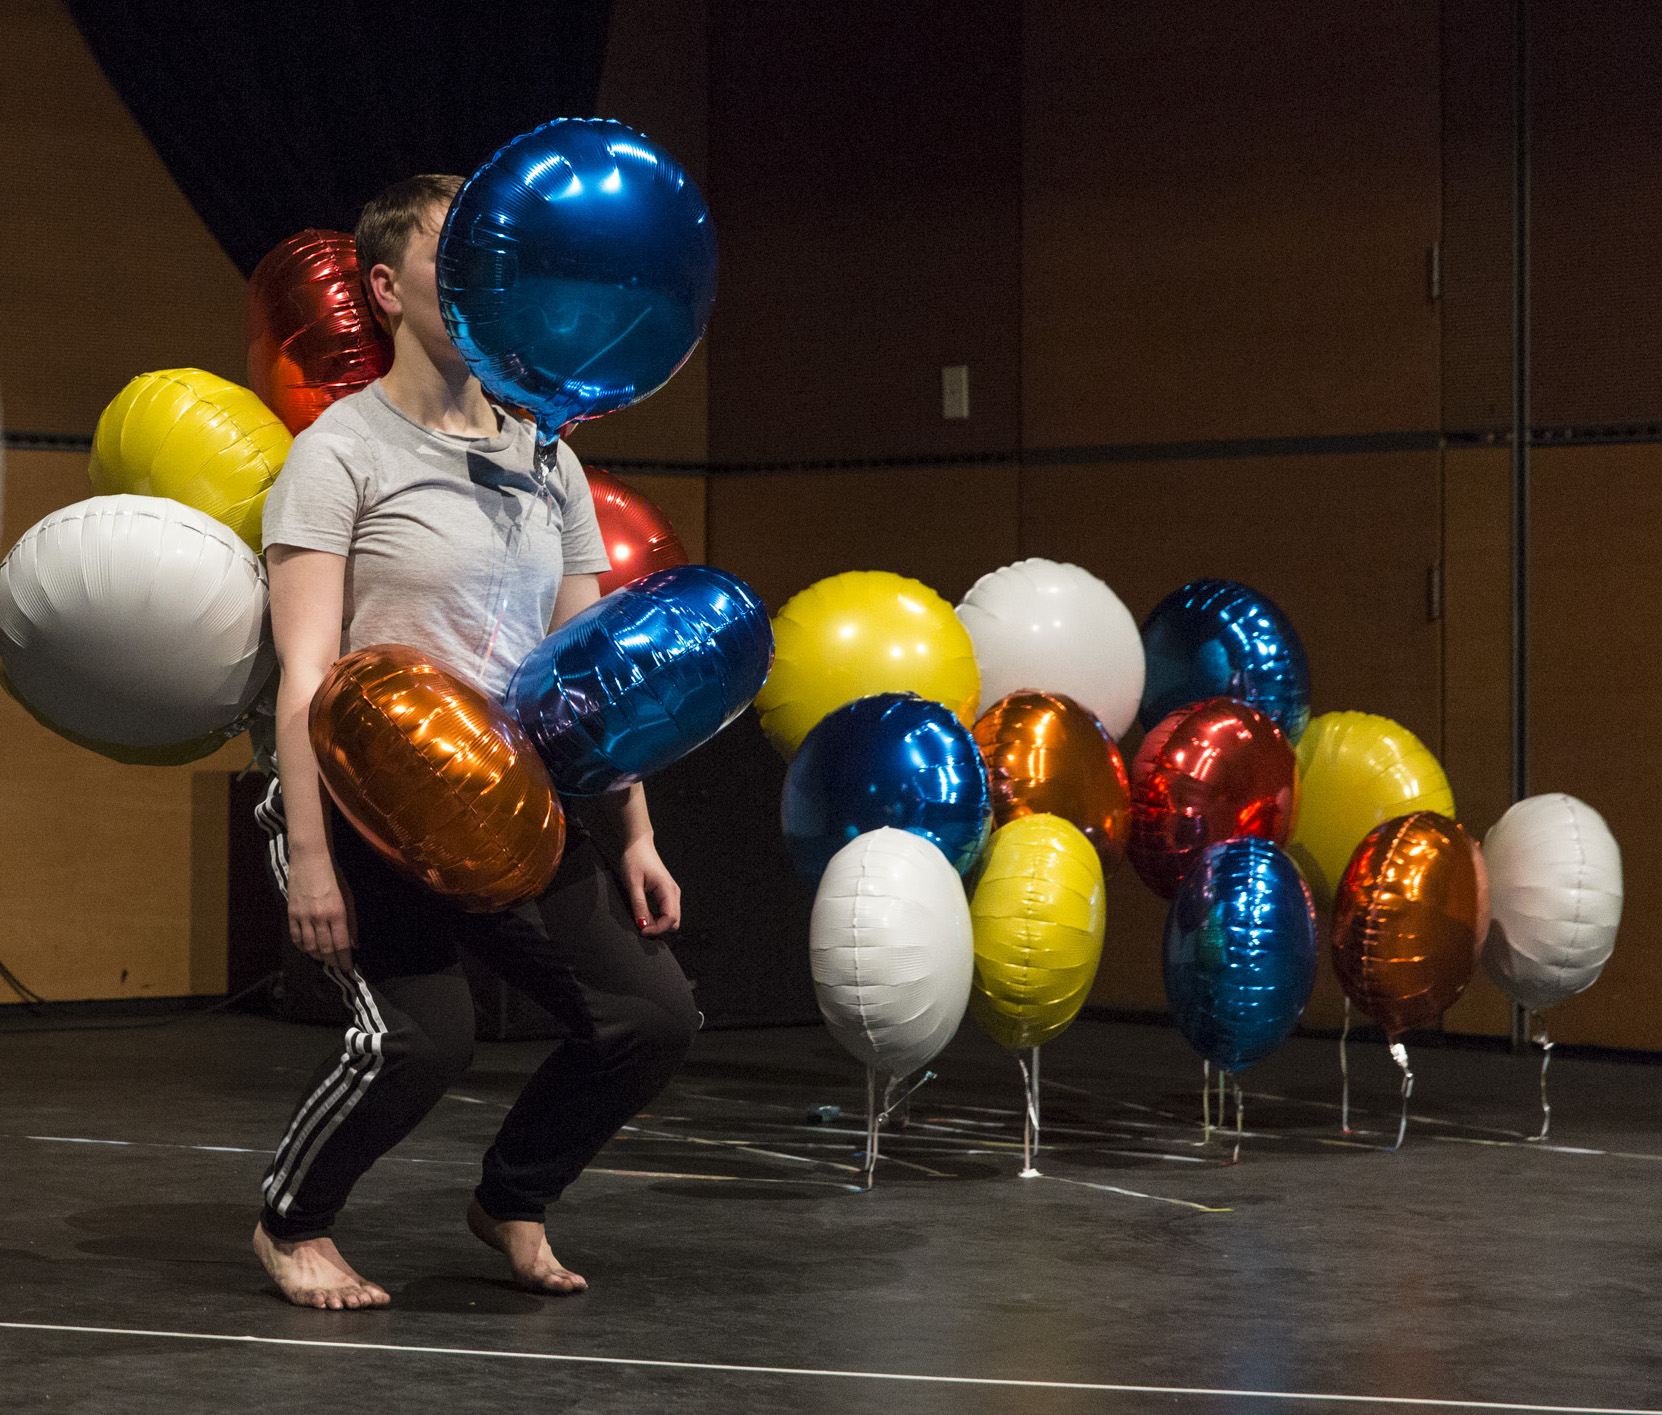 A young woman wearing casual sports wear, barefoot, standing knees bent, is surrounded by colourful helium balloons which are floating around her, covering her face